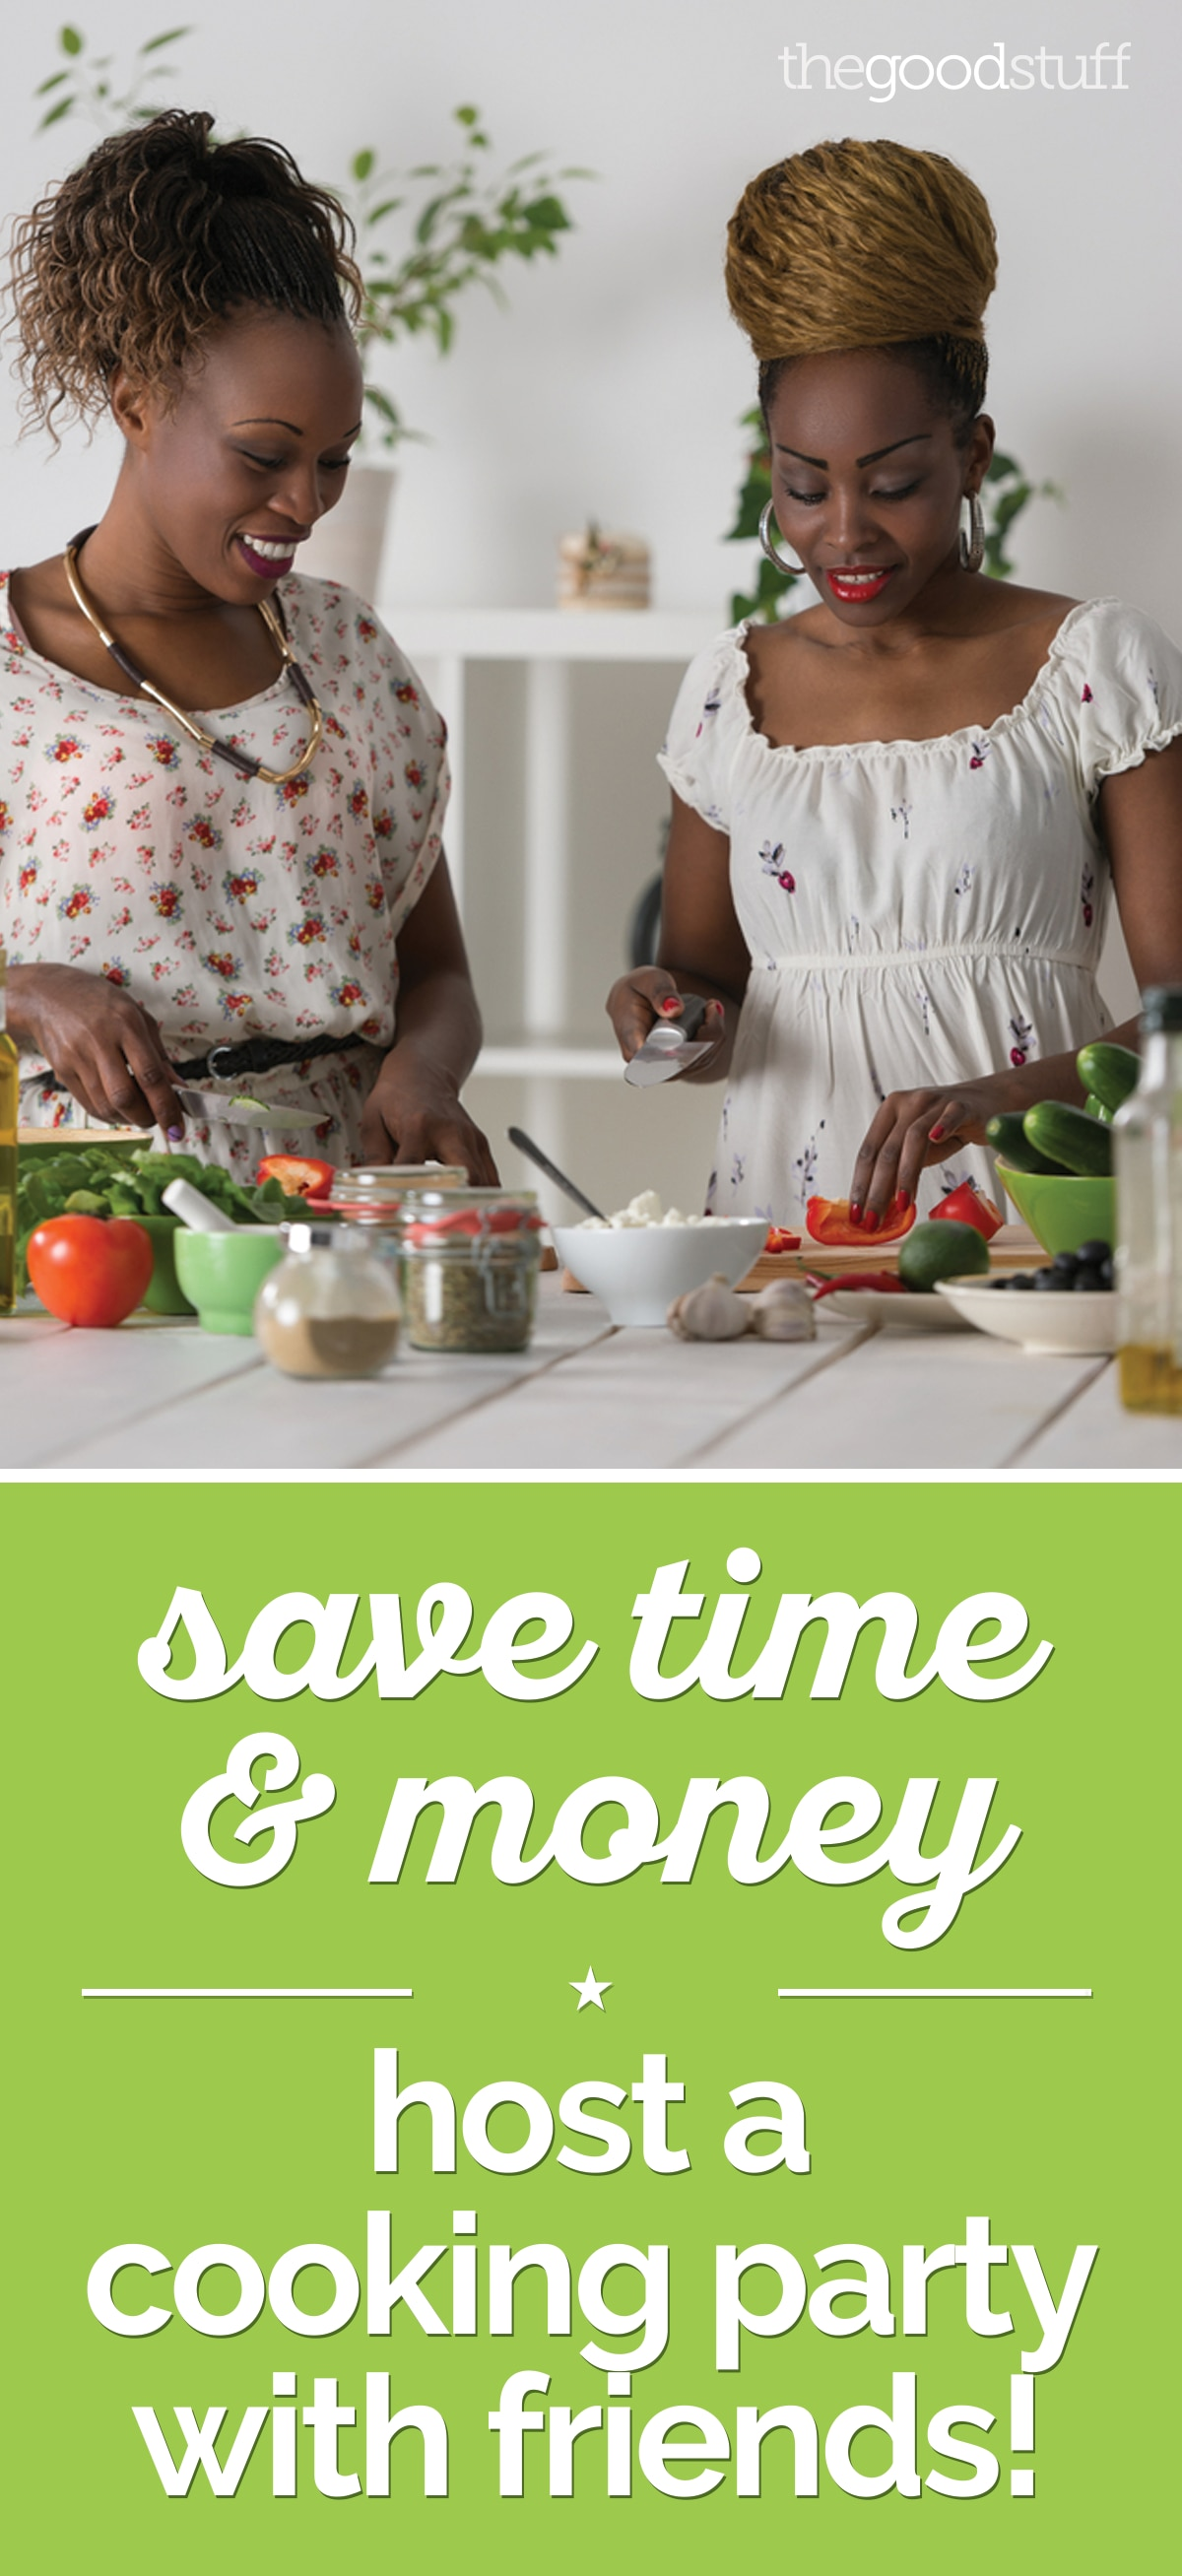 Save Time & Money: Host a Cooking Party with Friends! | thegoodstuff